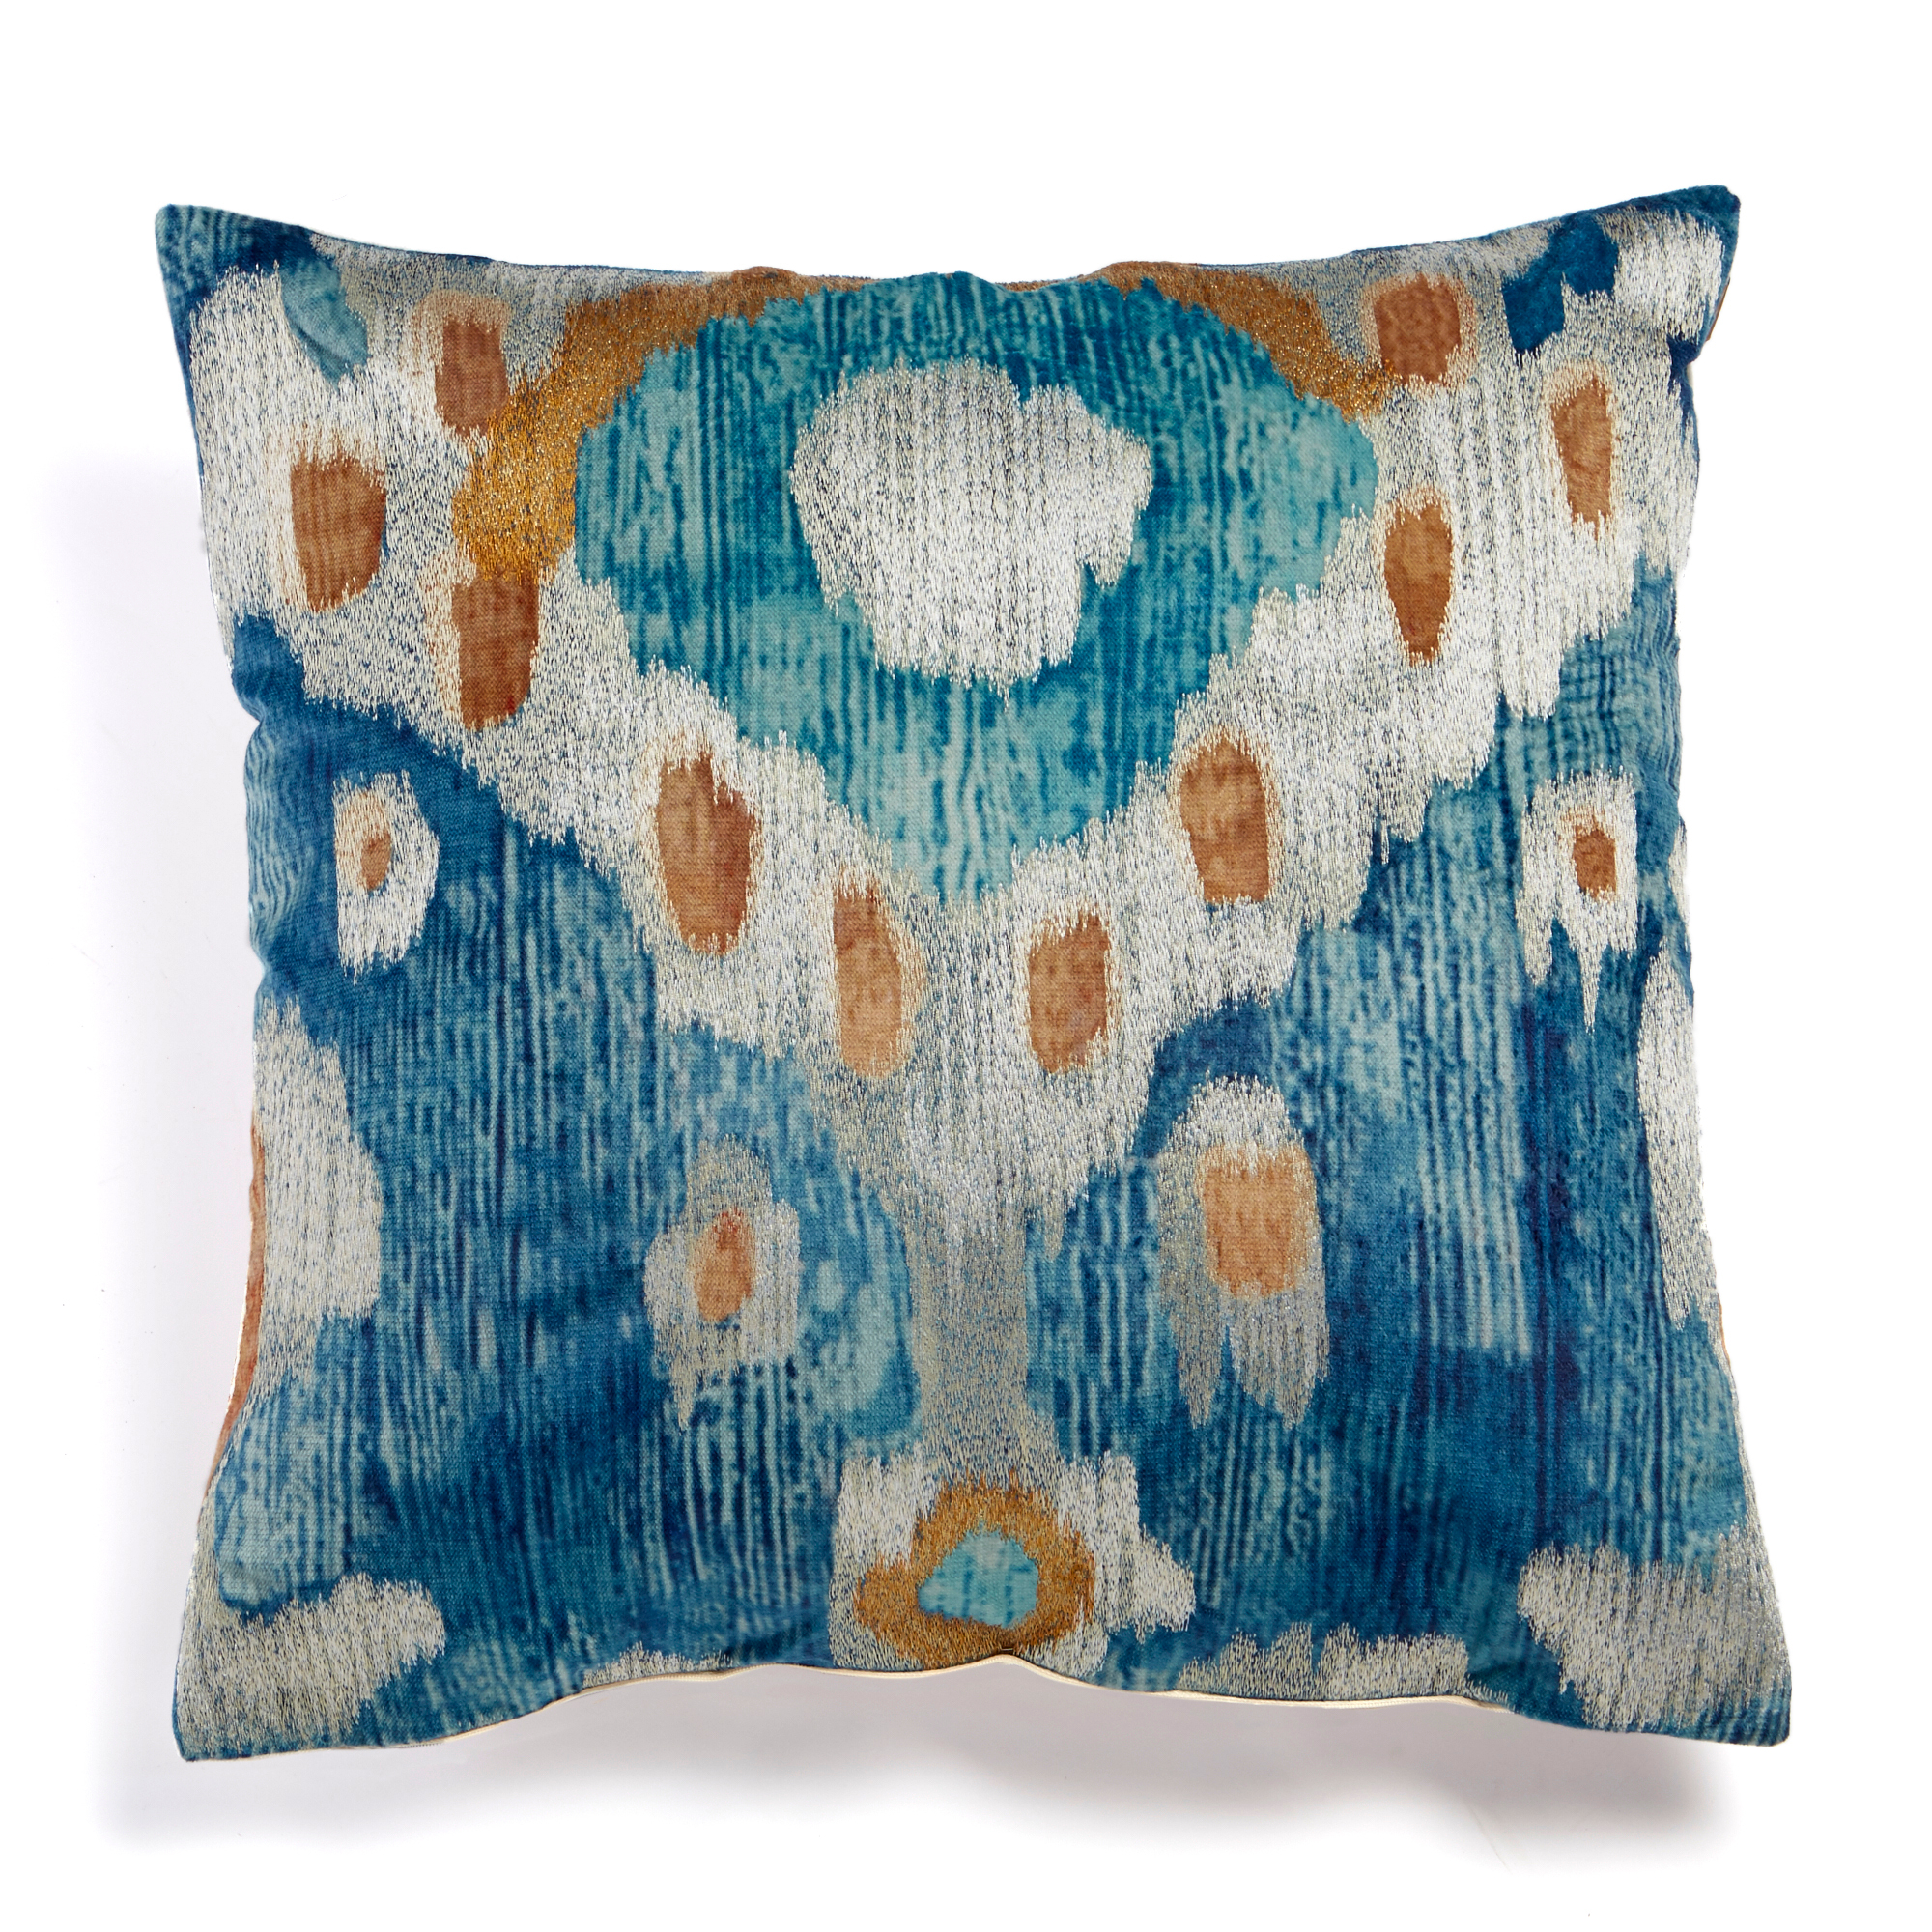 Velvet Ikat Square Pillow